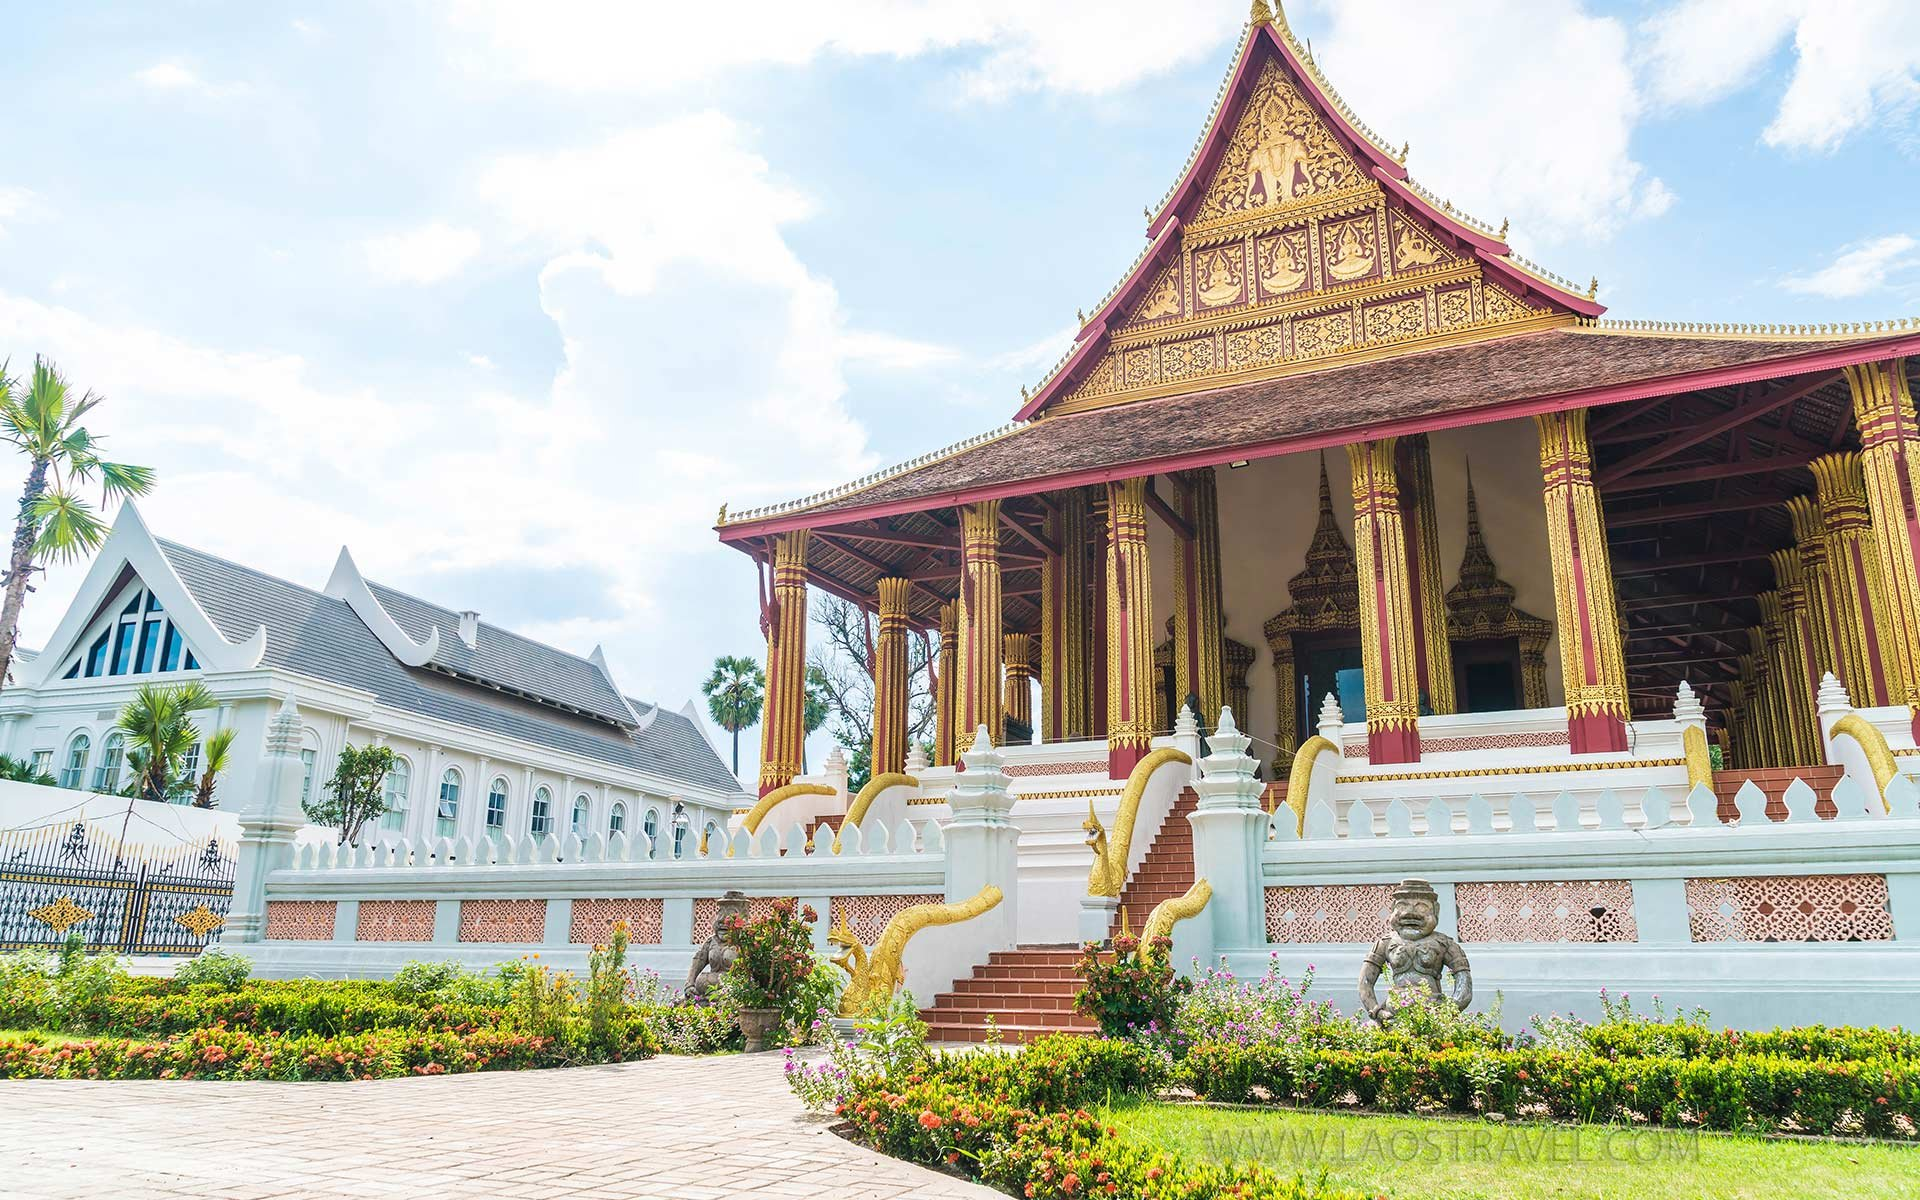 Laos Expedition - 8 Days